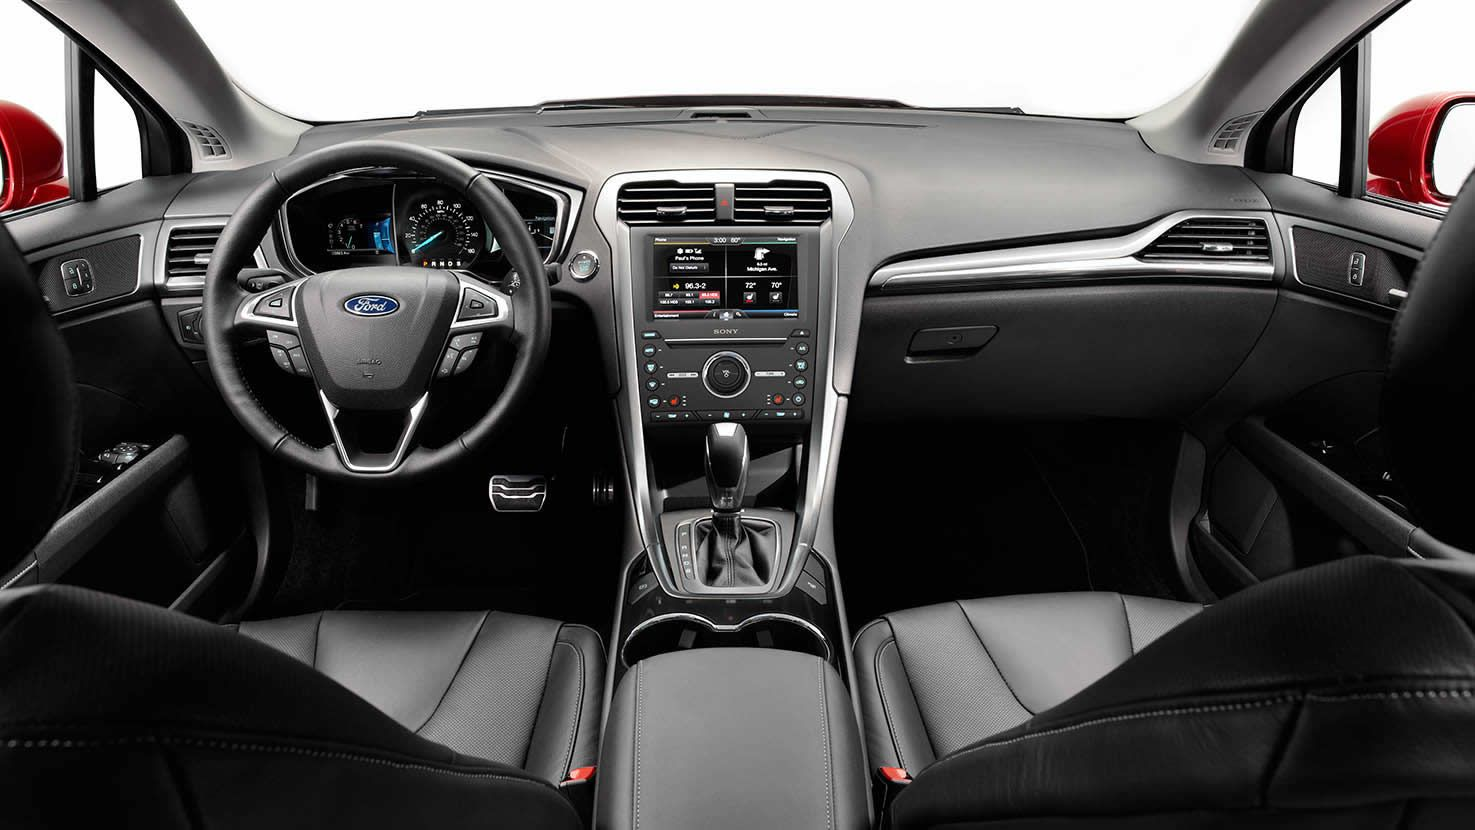 Another Interior View Of The 2015 Ford Fusion